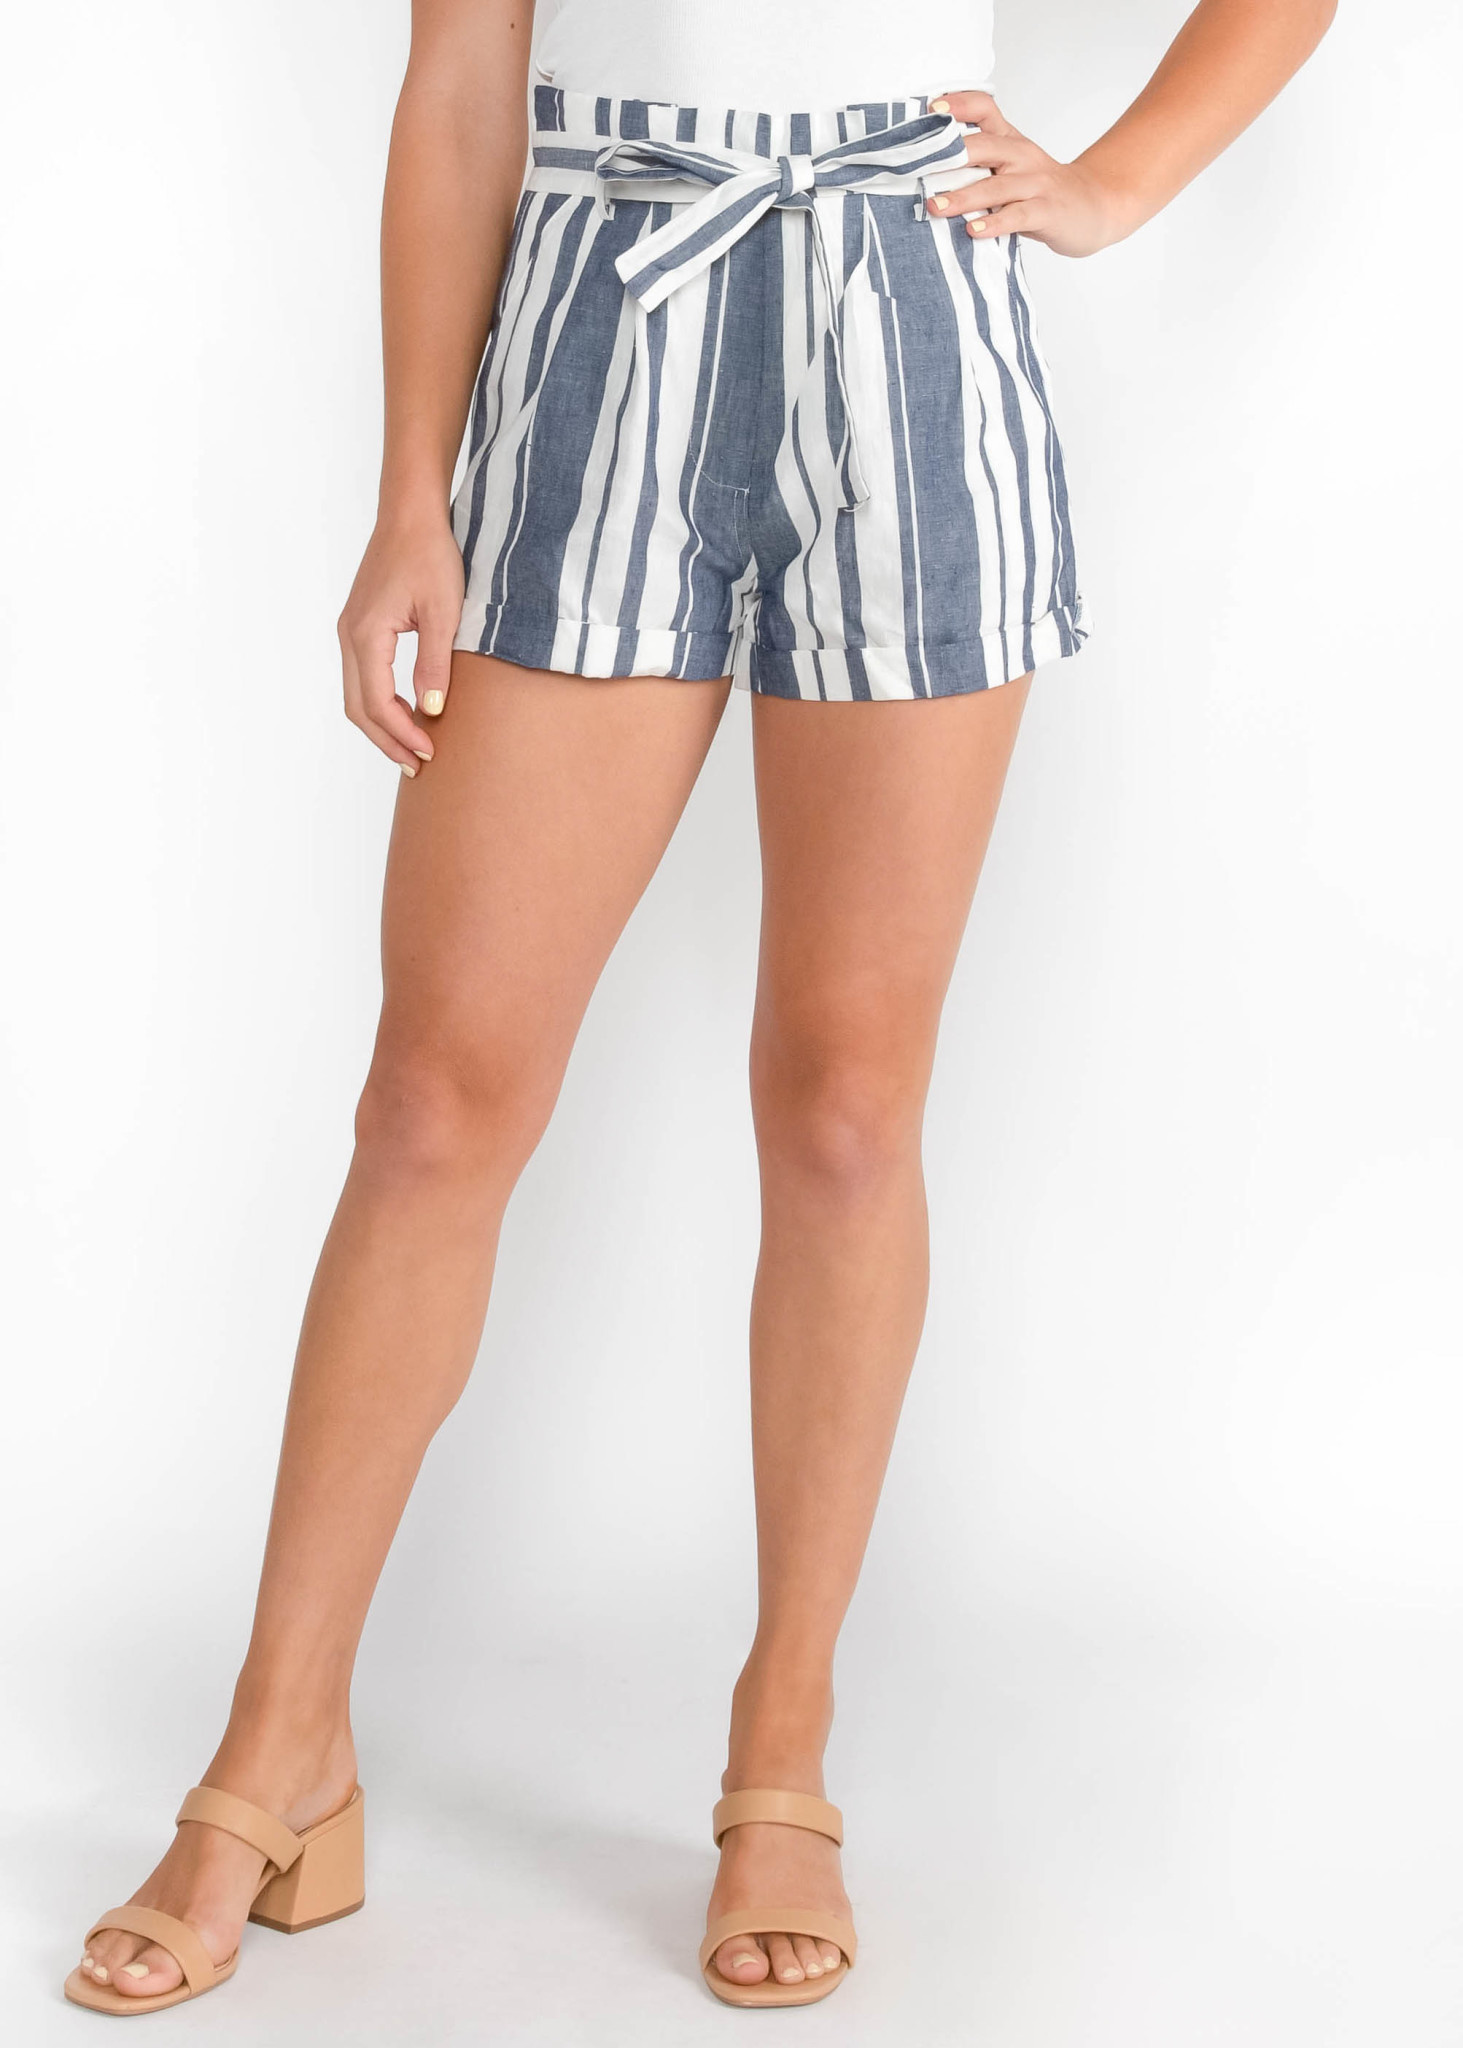 FOLLOW THE SUN STRIPED SHORTS